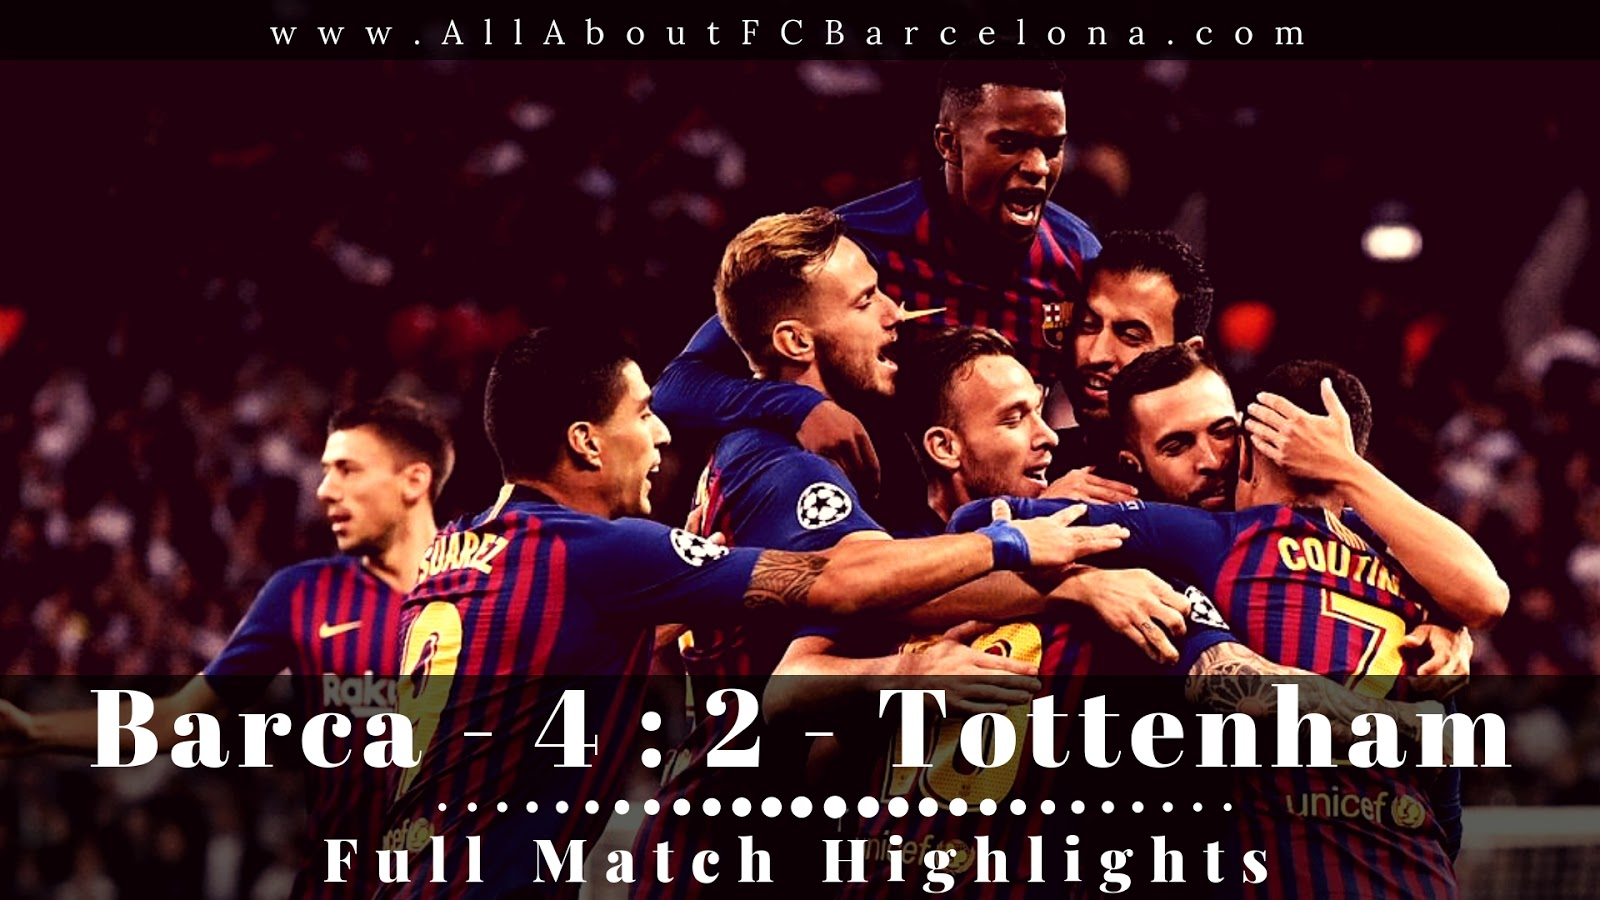 FC Barcelona vs Tottenham Full Match Highlights